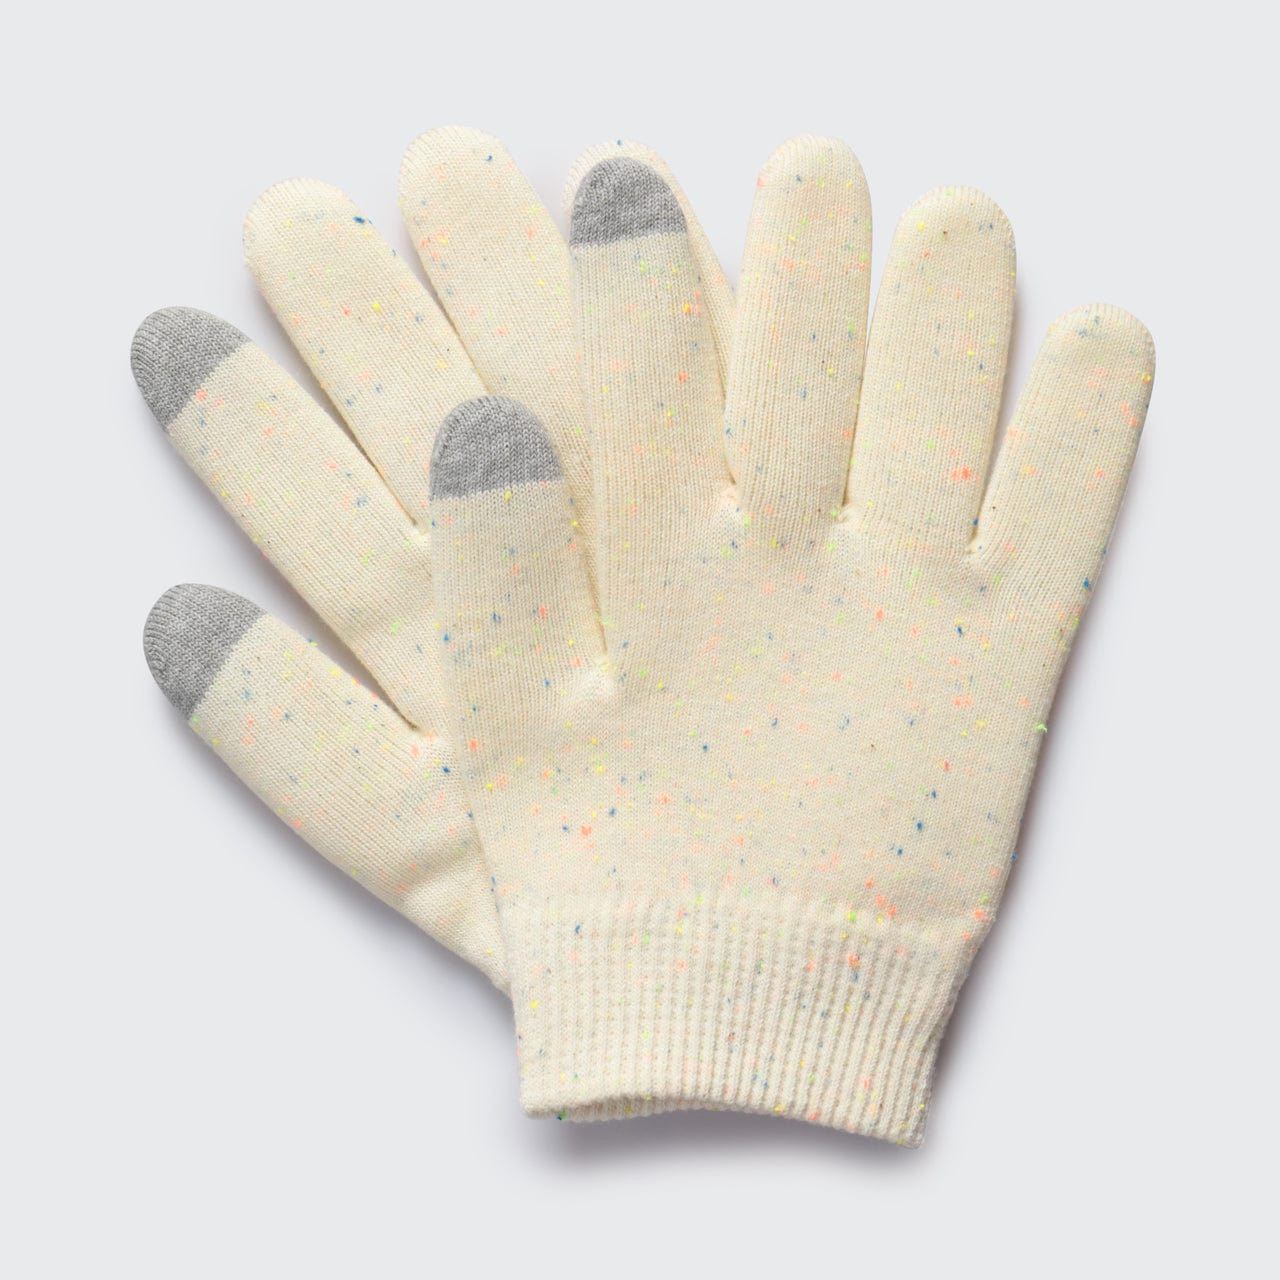 Moisturizing Spa Gloves Cleanse Cleanse